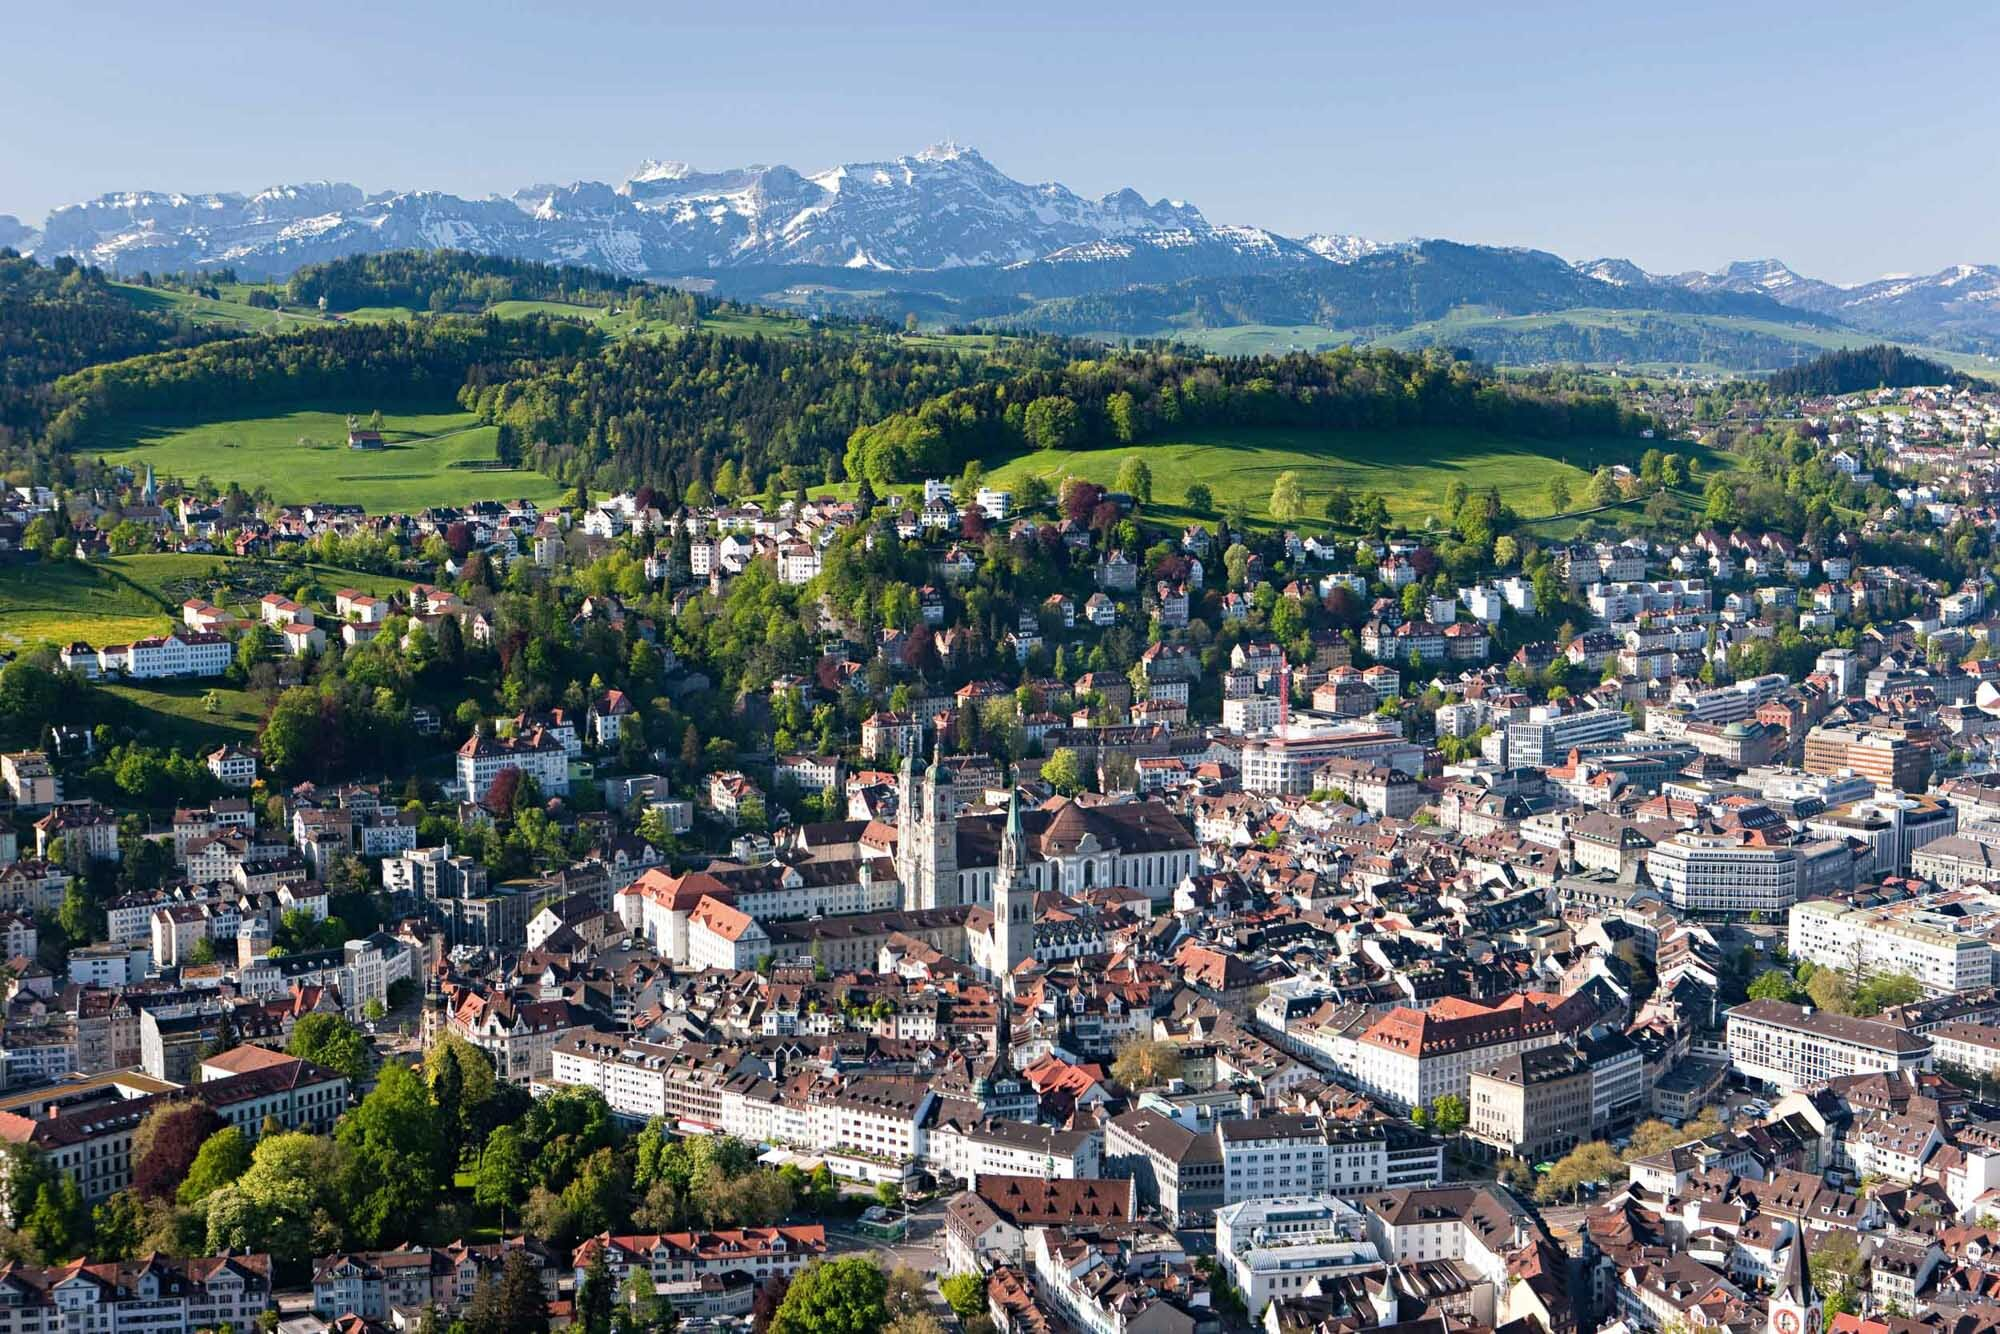 St. Gallen in Eastern Switzerland, labelled world cultural heritage by UNESCO. In the background the Alpstein mountain chain with the Saentis (2502 m). Copyright by: Switzerland Tourism